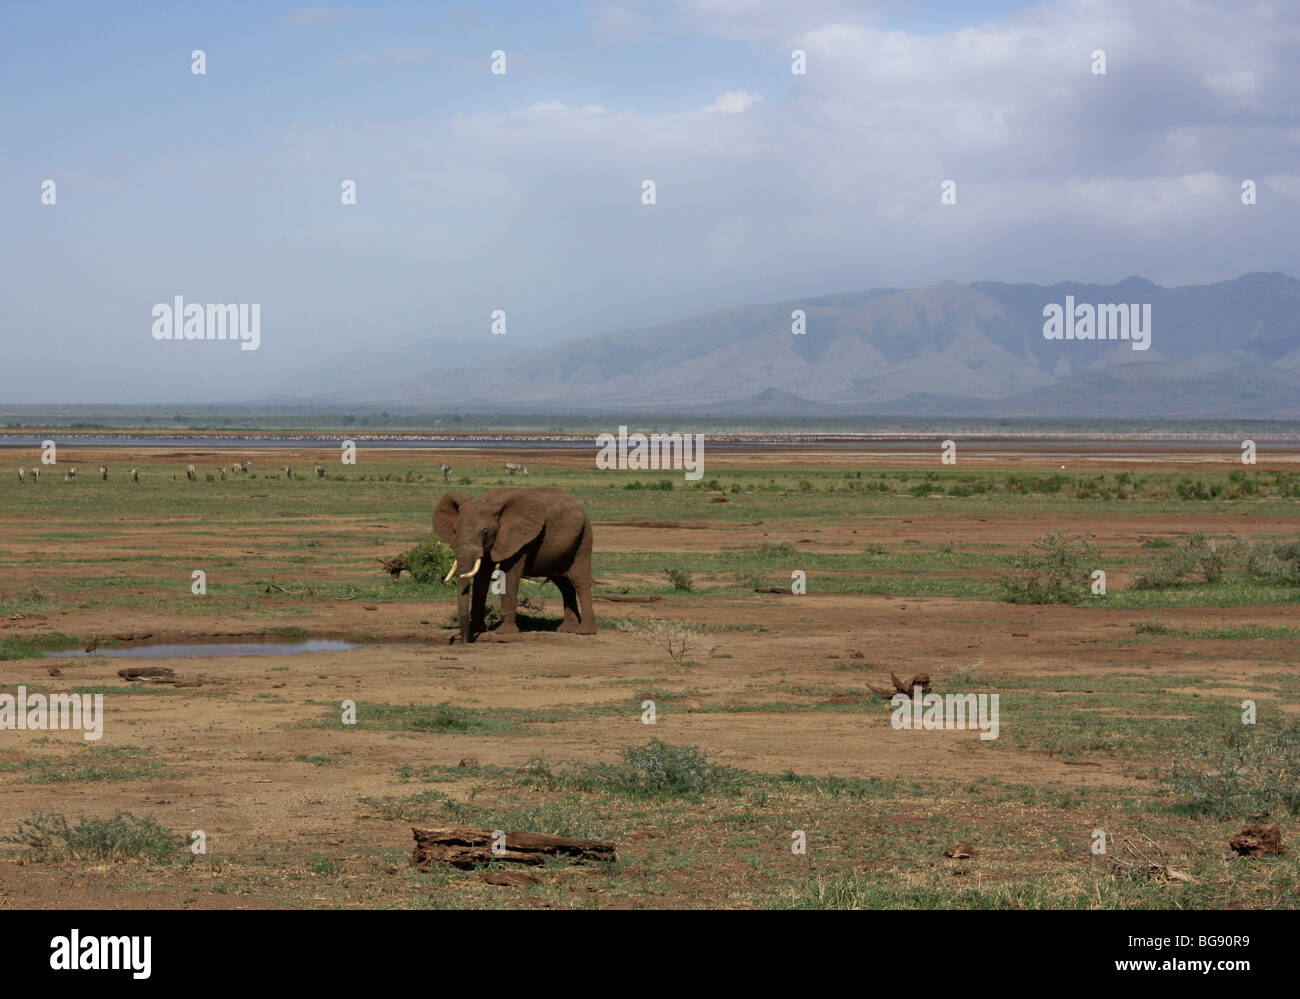 Elephant in Lake Manyara National Park, Tanzania, Africa - Stock Image